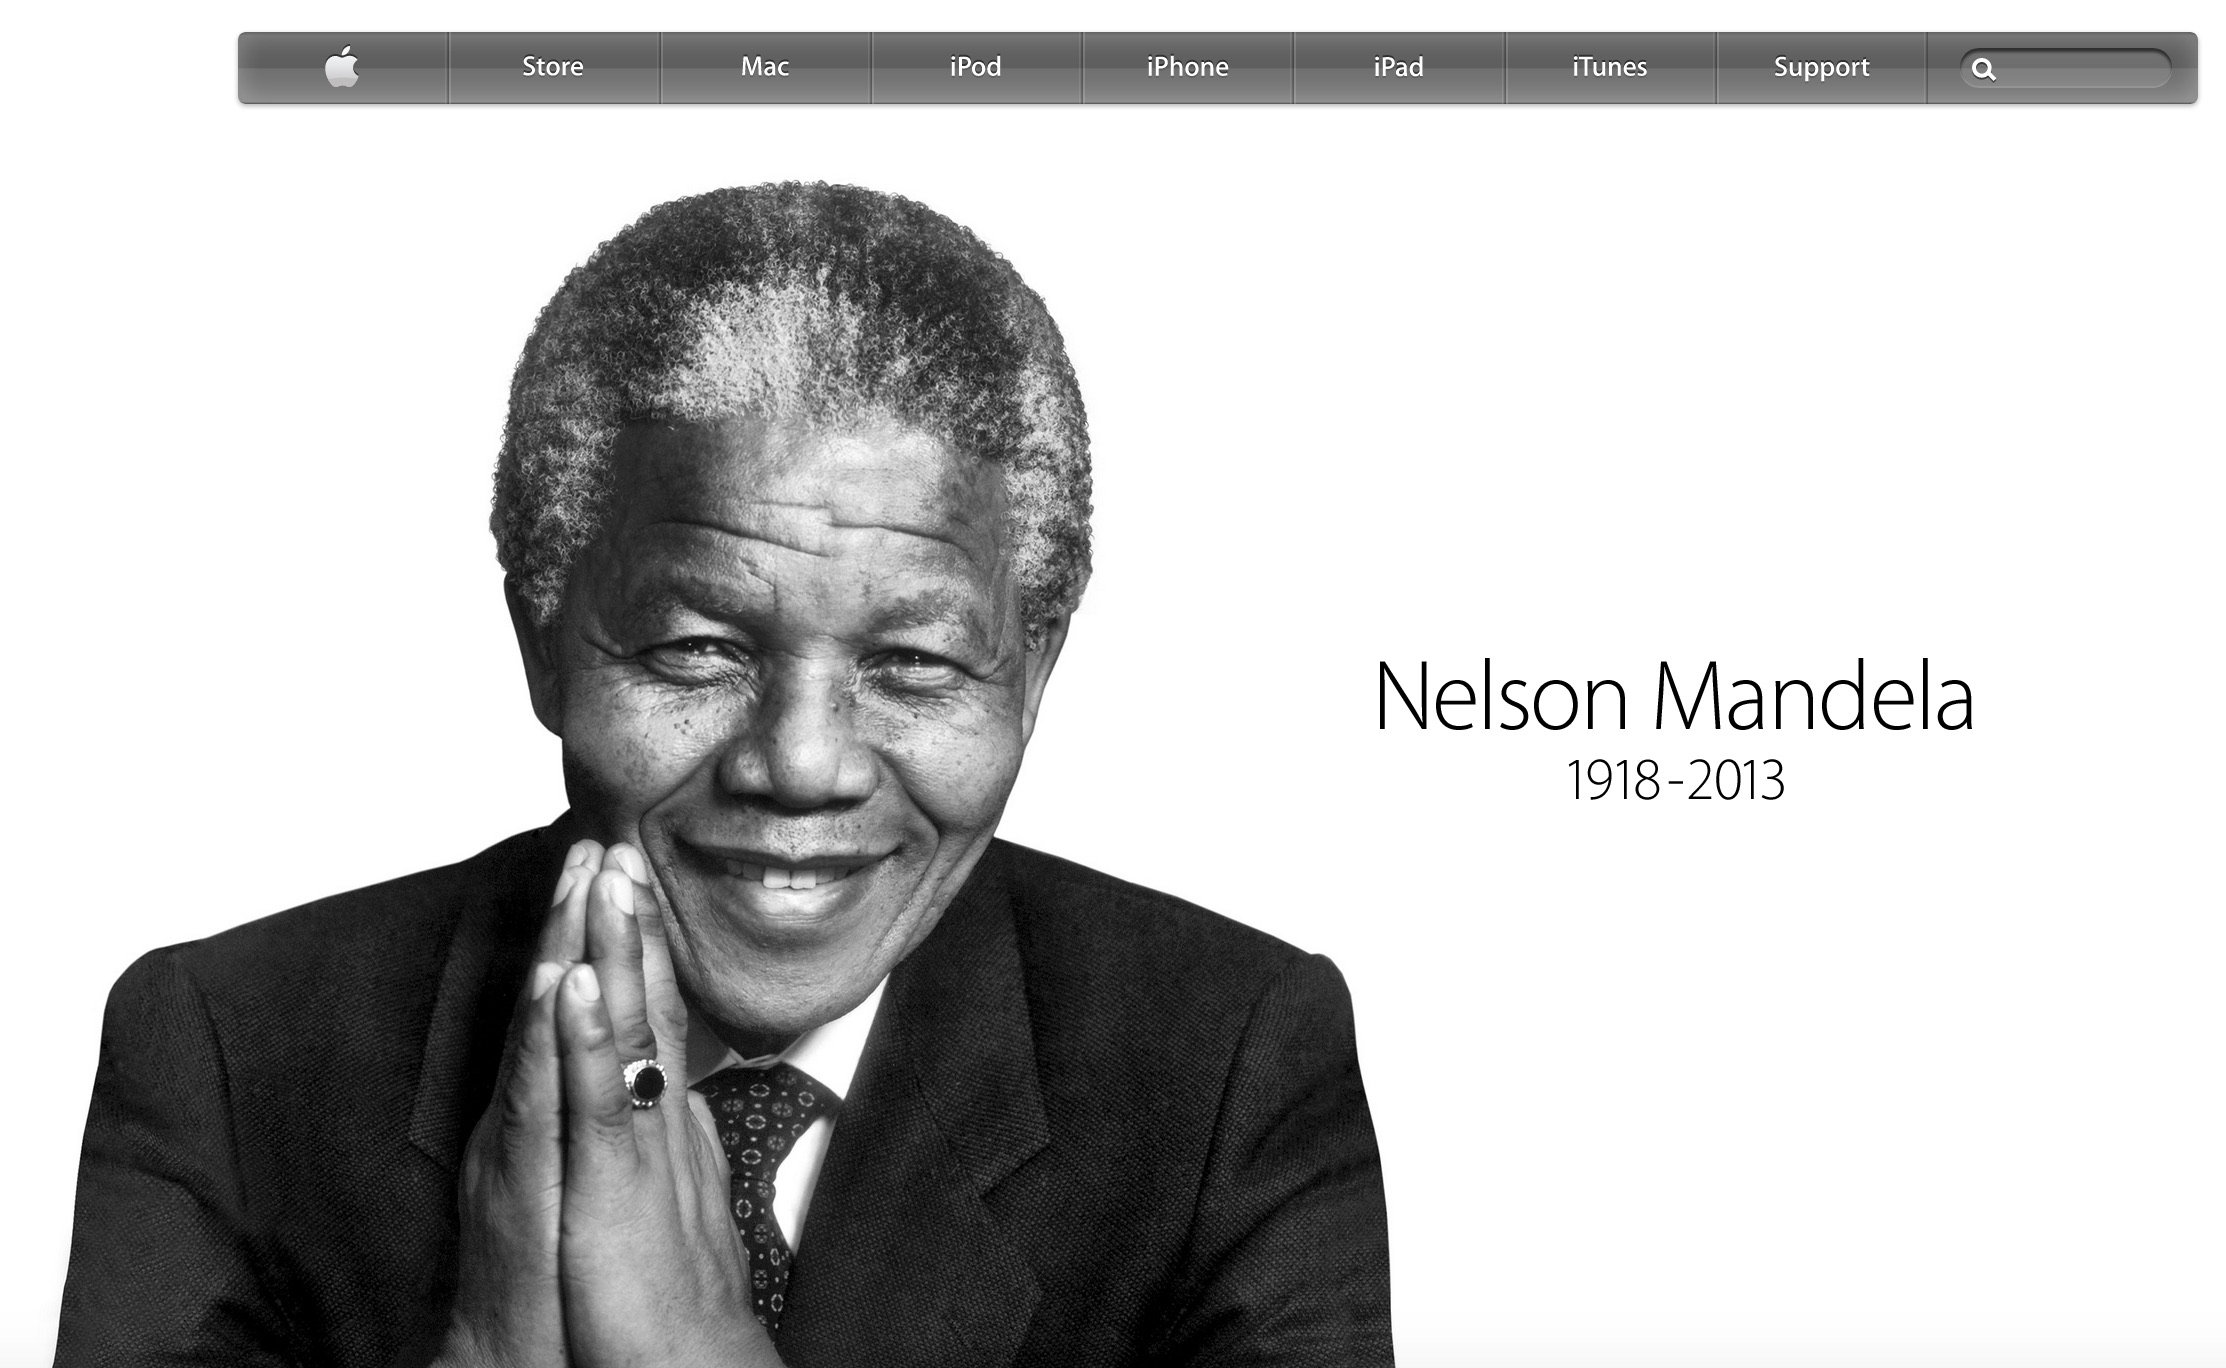 Homepage after the death of Nelson Mandela (2013)